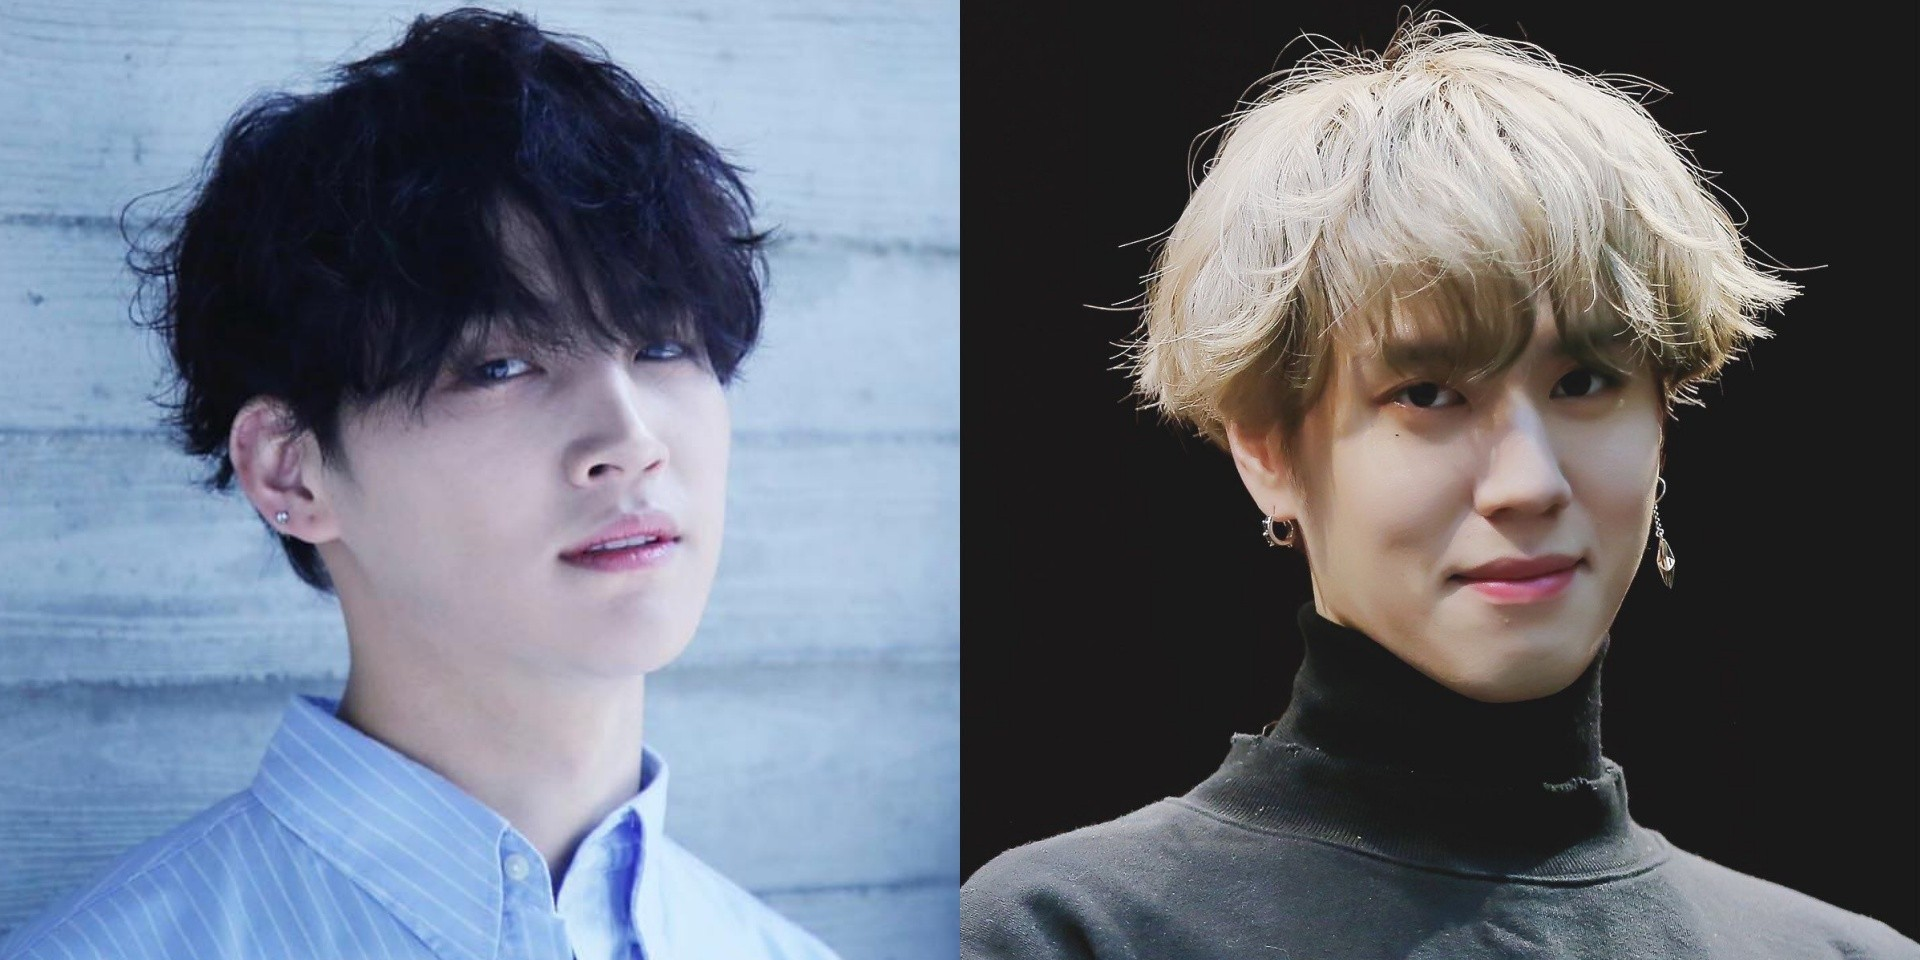 GOT7's Lim Jaebeom and Yugyeom (Jus2) to perform in Singapore in May